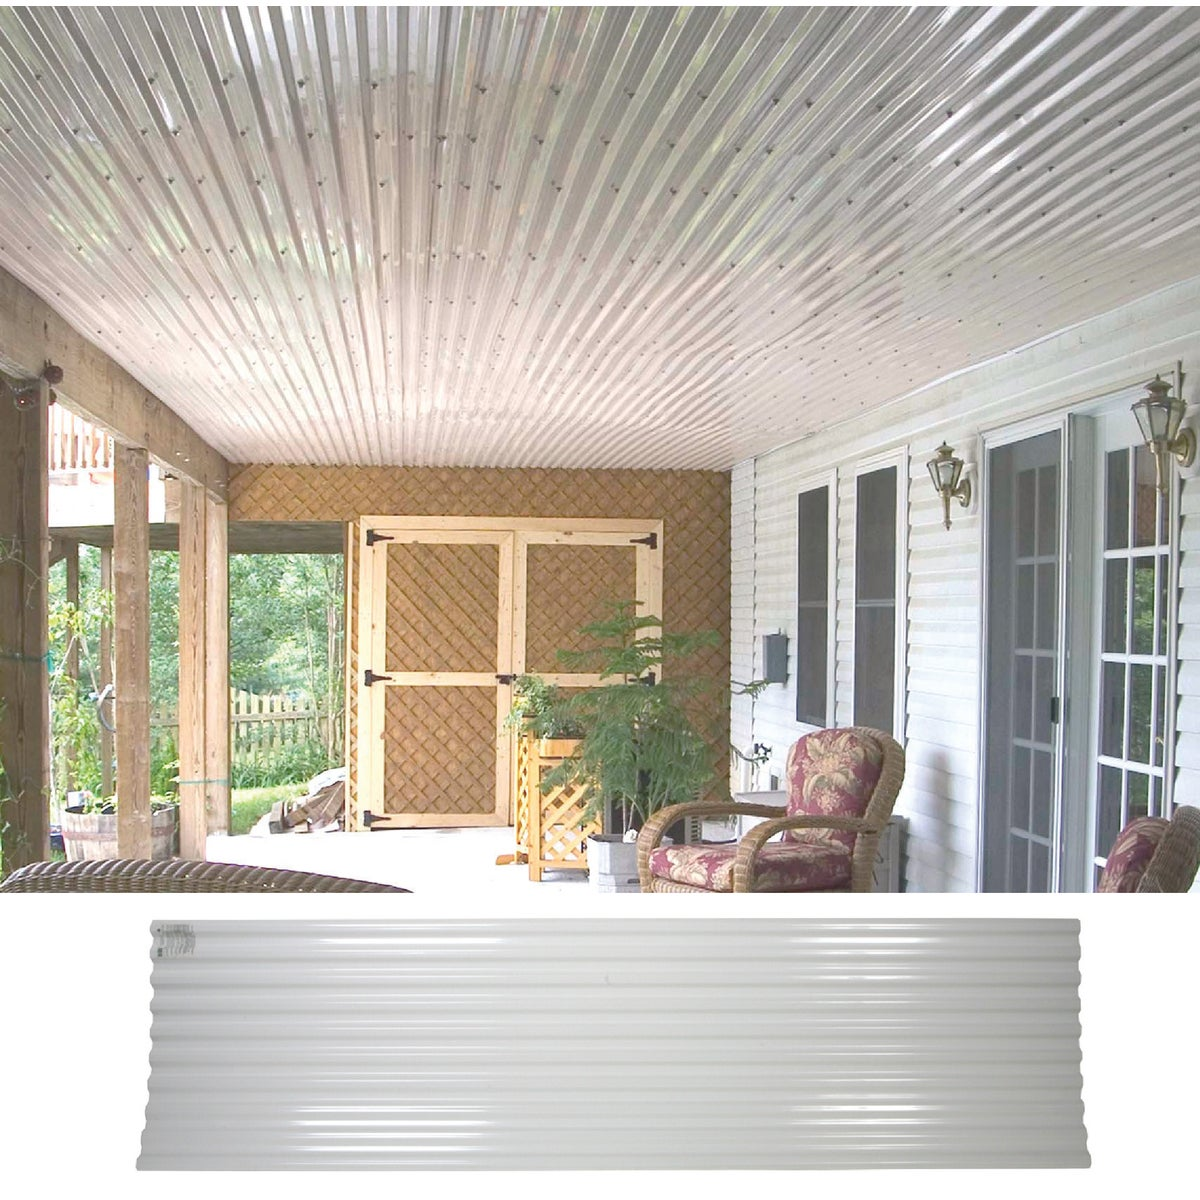 10' WHT CORRUGATED PANEL